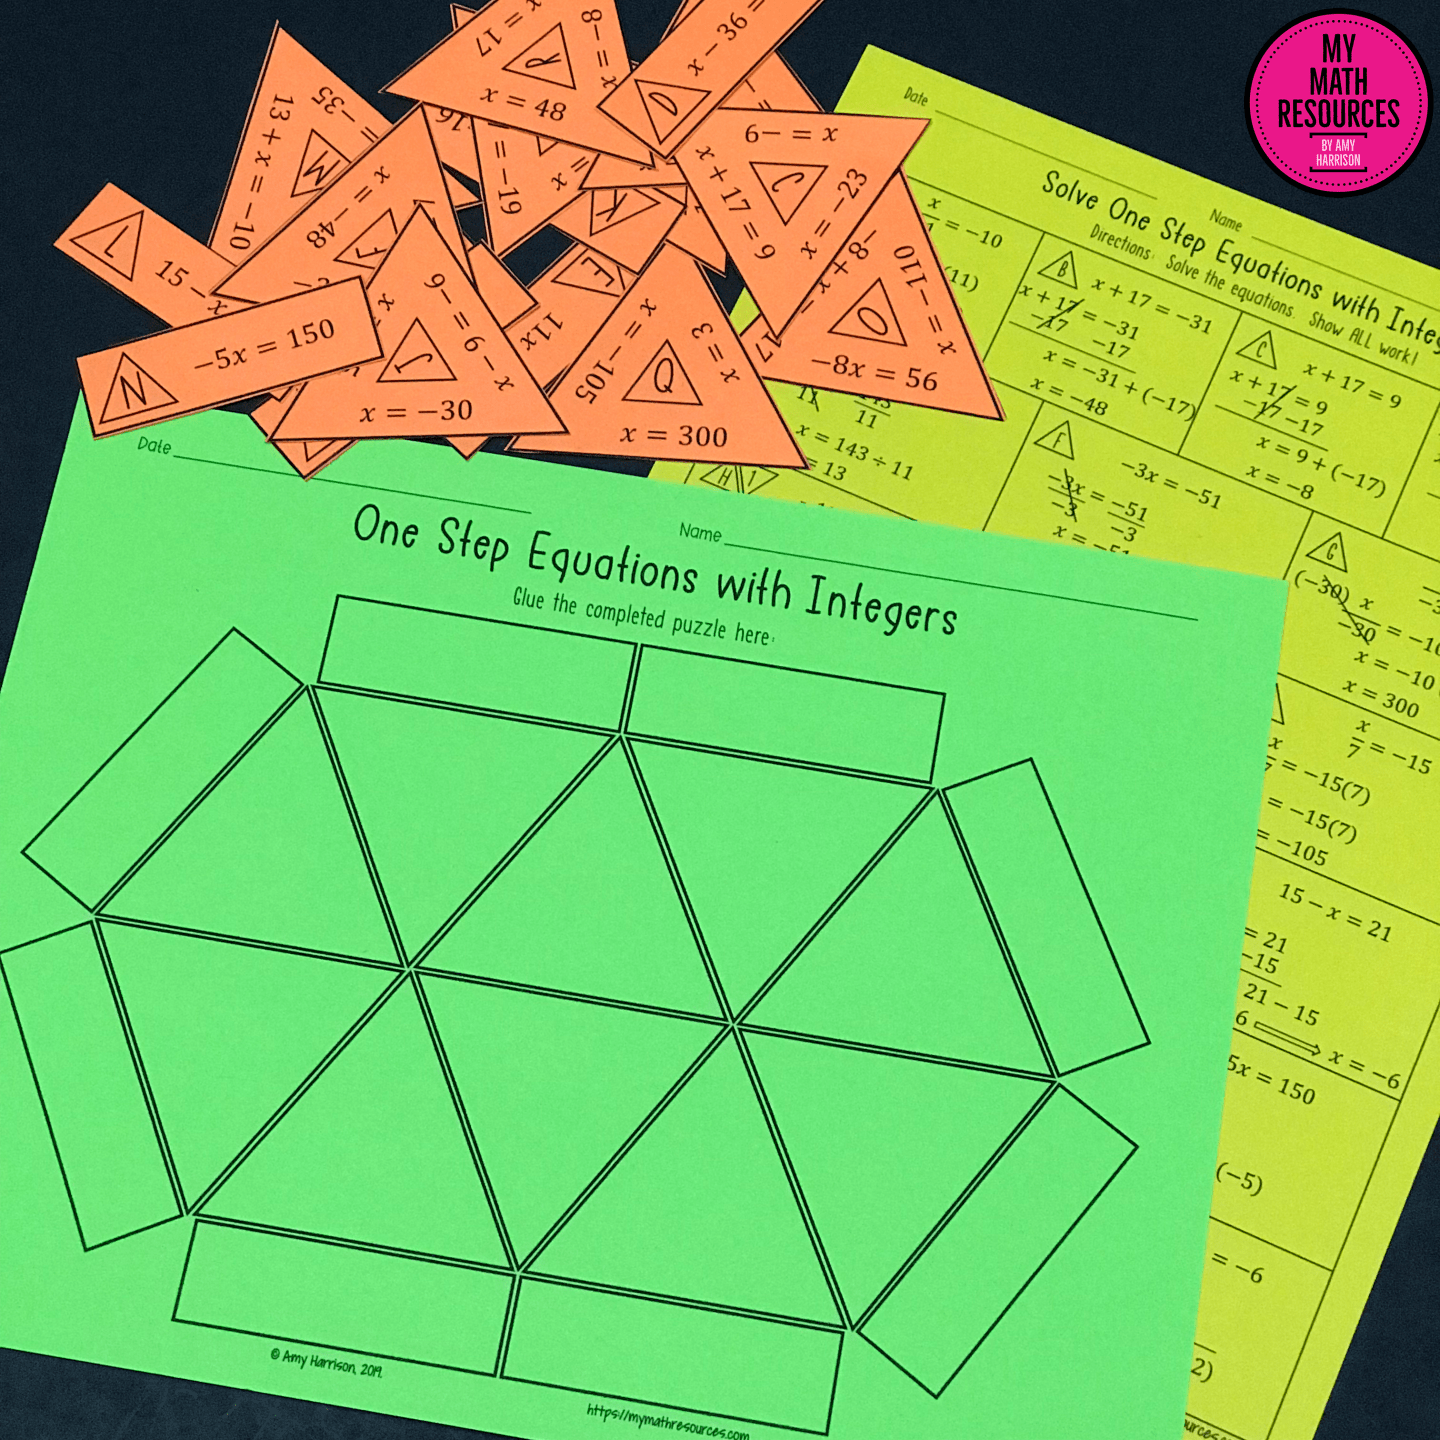 One Step Equations With Integers Triangle Puzzle